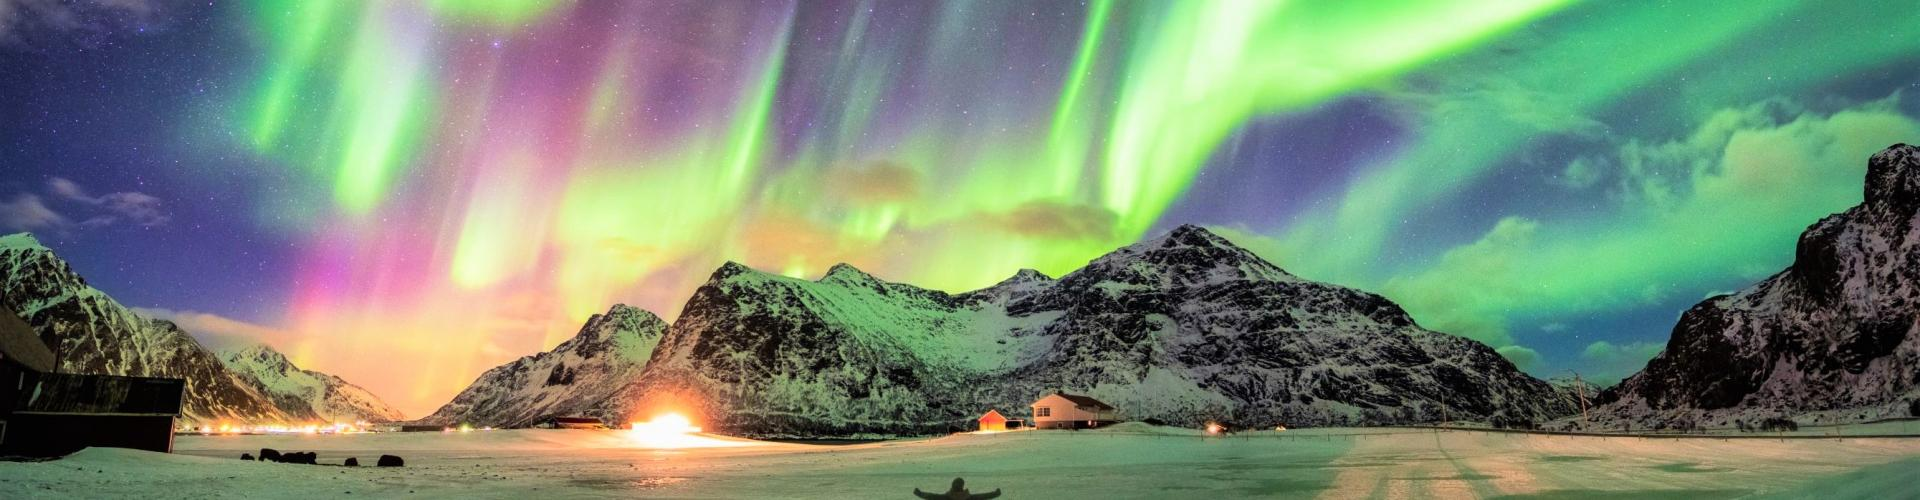 Aurora borealis Northern lights over mountain small 3